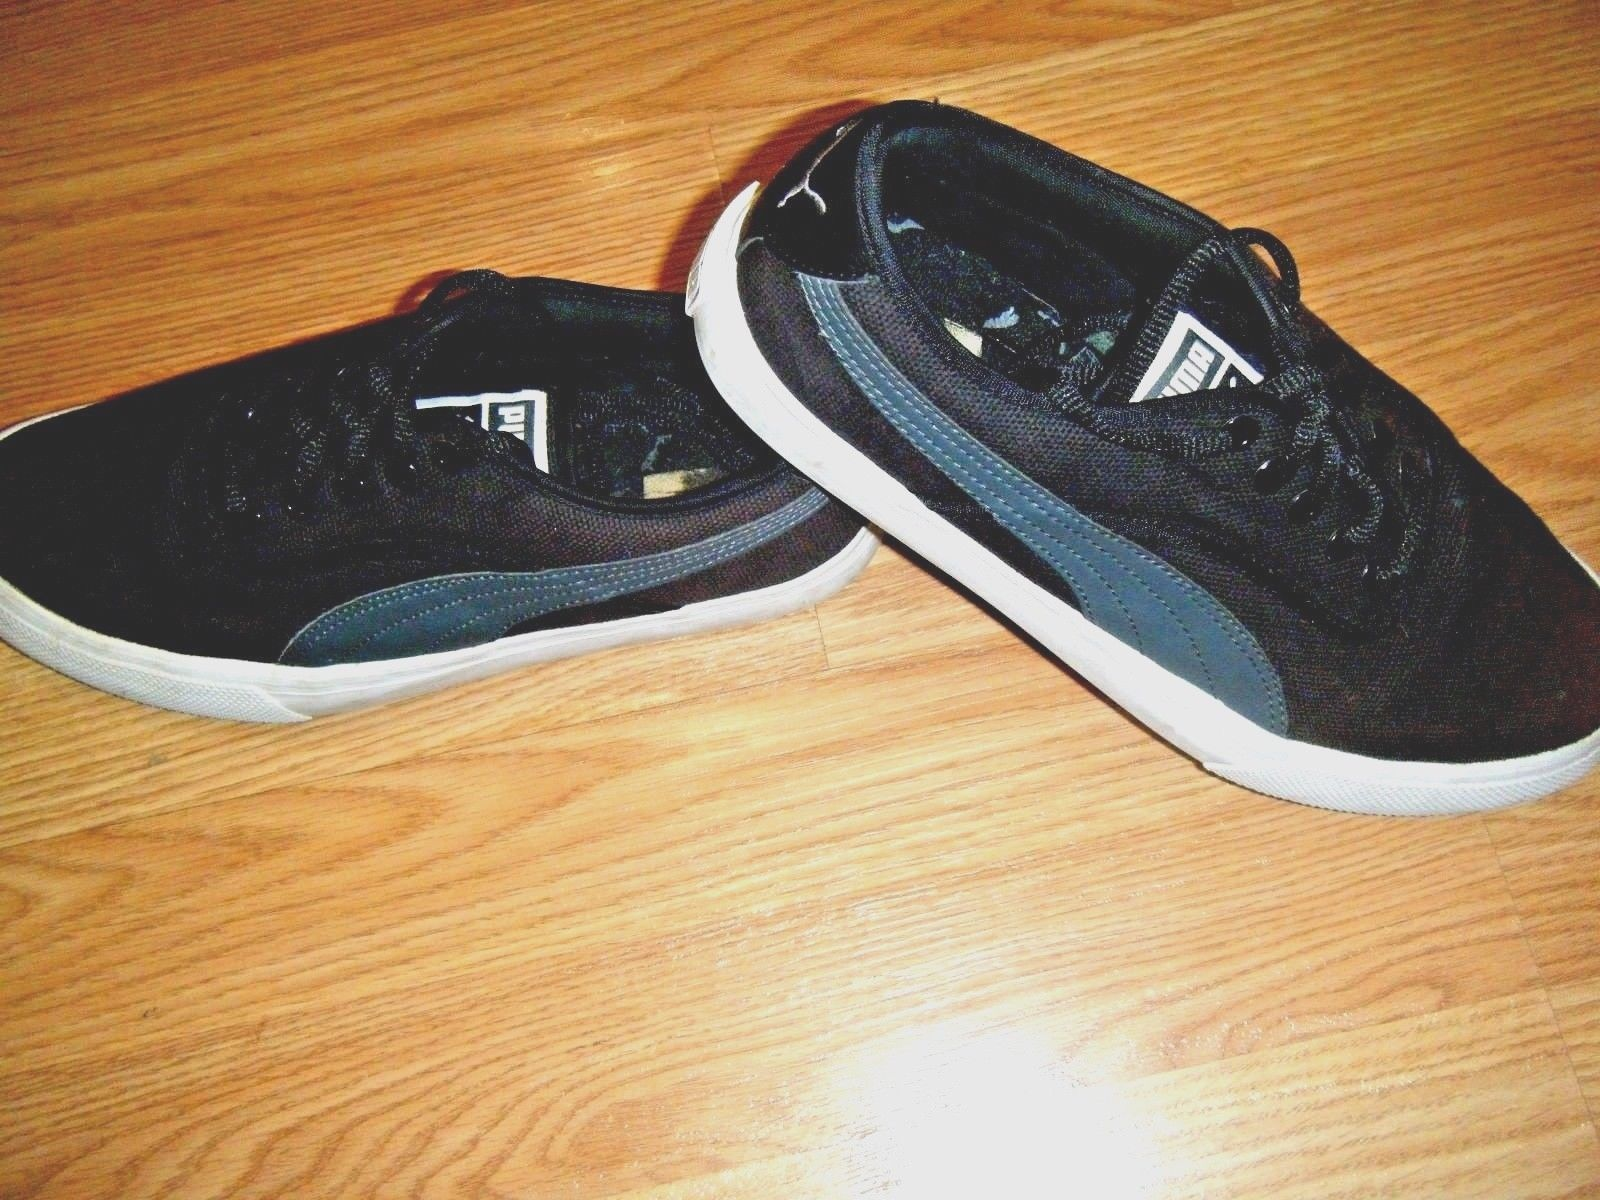 9a618339433 Puma Black Canvas Low Sneaker Shoes Size 7 and 50 similar items. S l1600